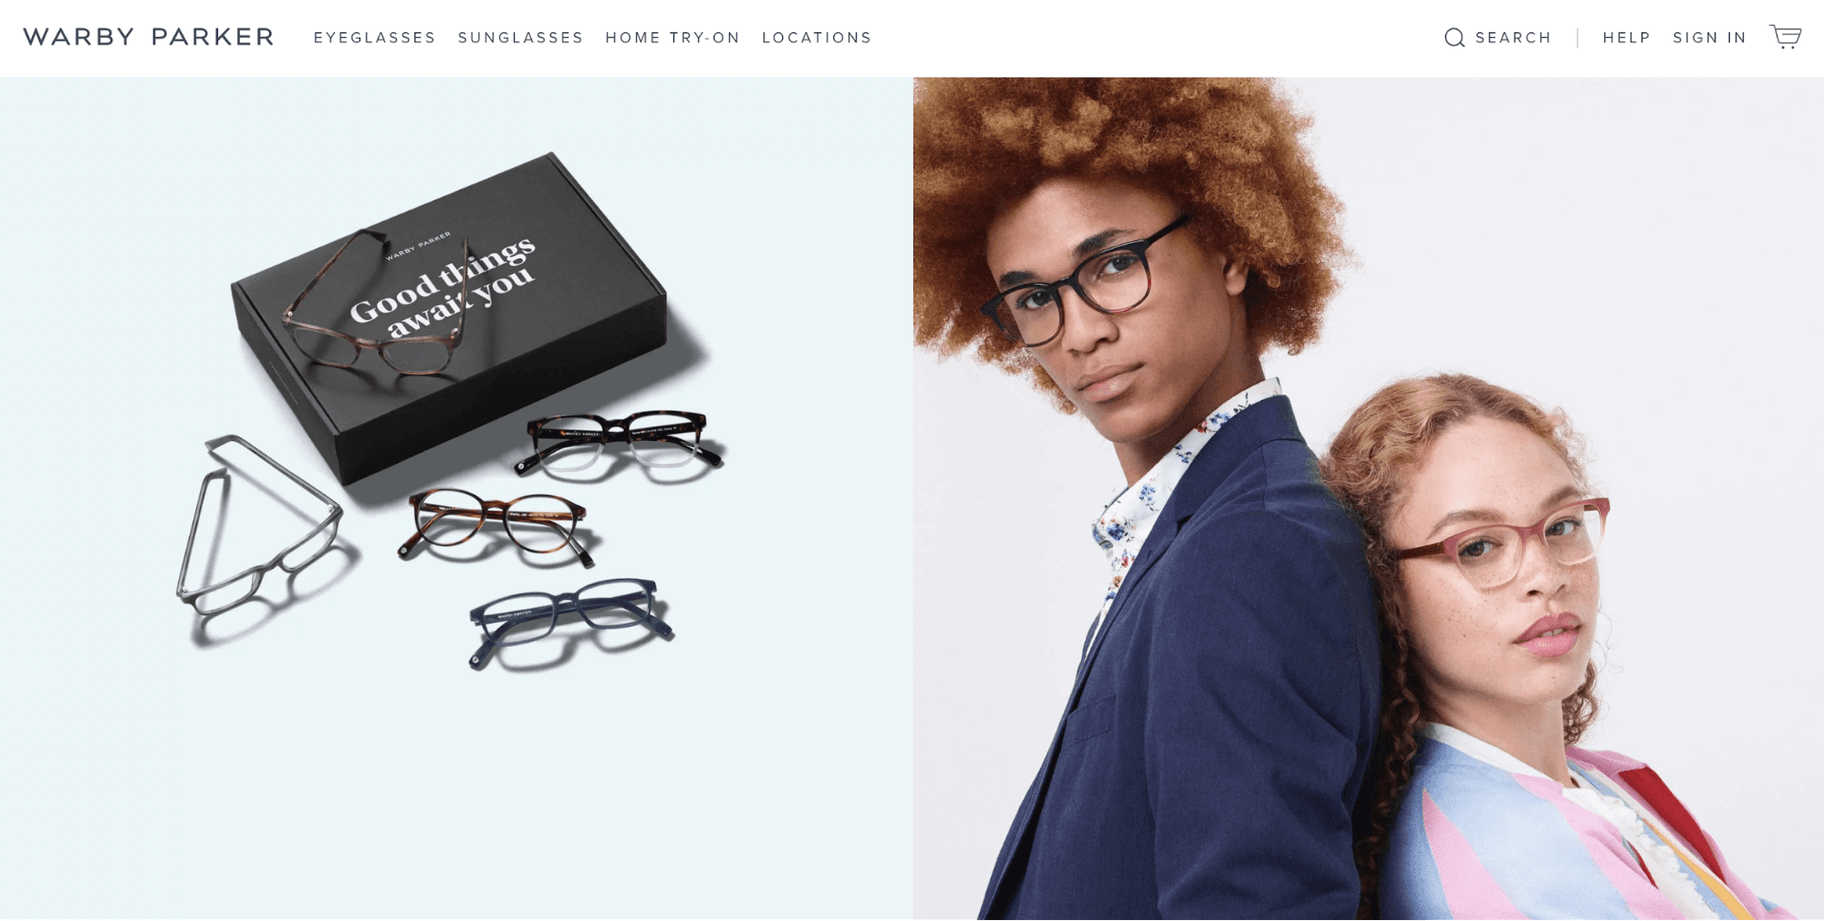 Warby Parker Vision statement